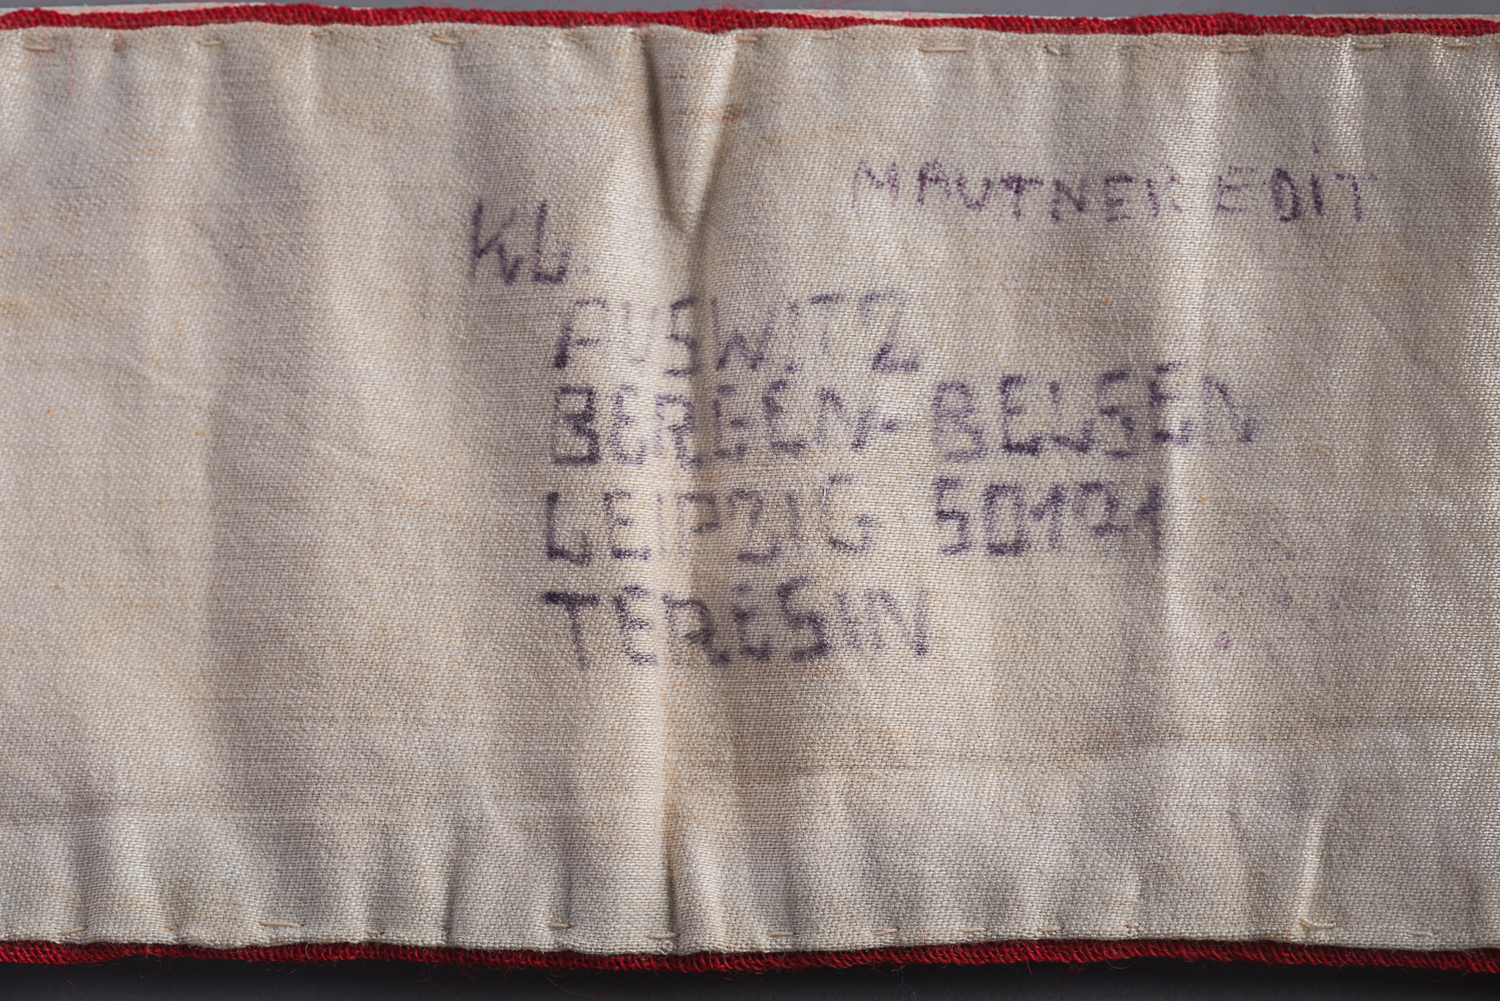 Her prisoner number 50171 is also written on the armband. Edith wrote these inscriptions after the war as a memento of her experience in Nazi concentration camps.